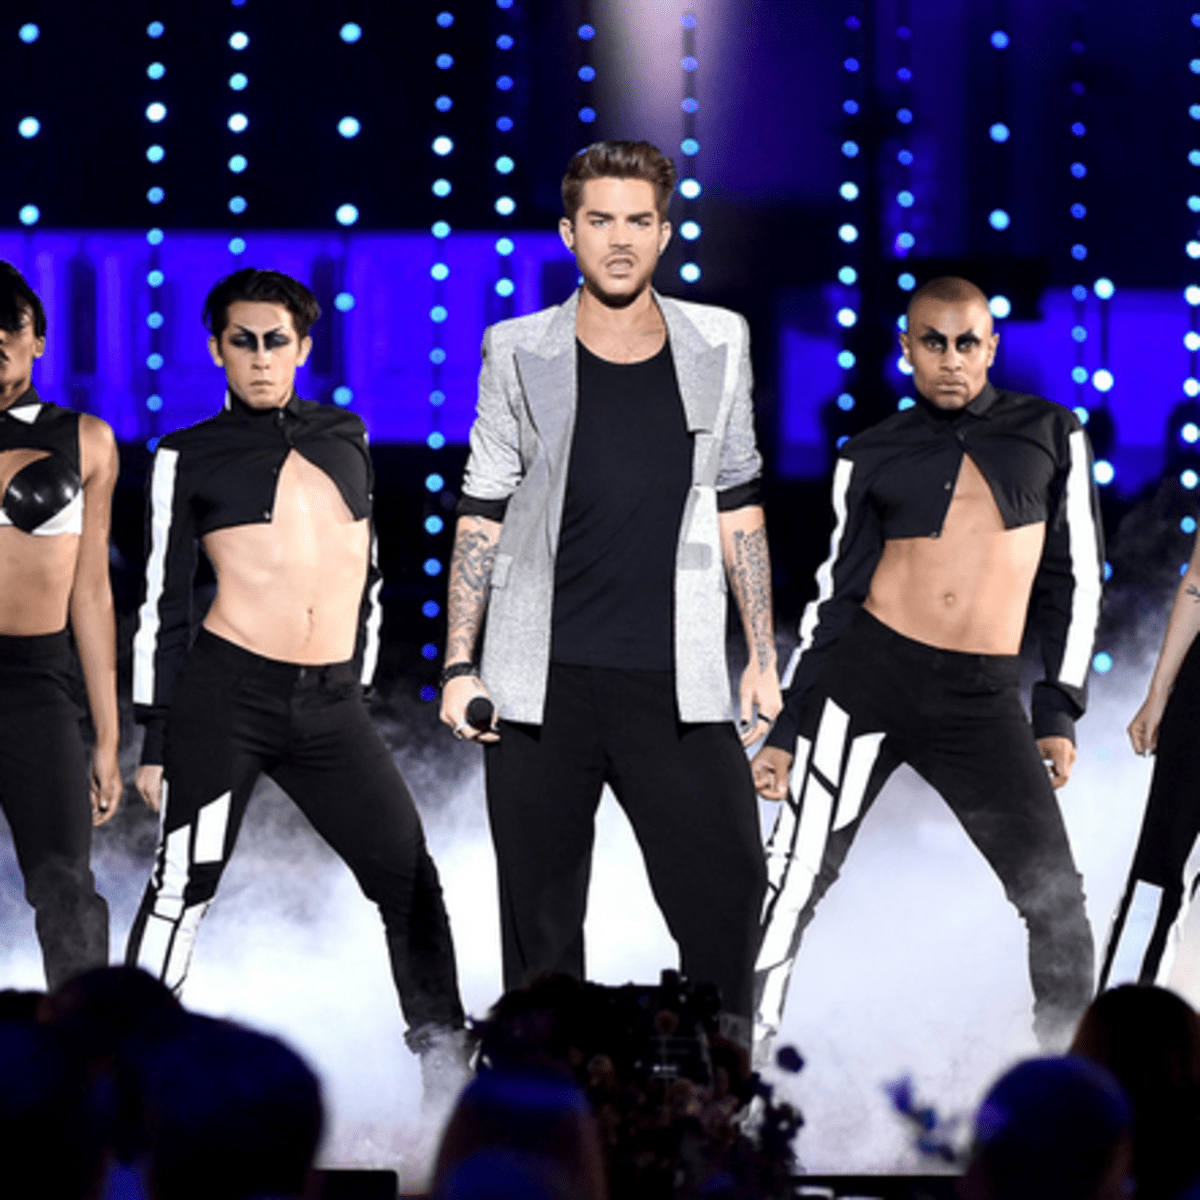 Adam Lambert dancers wearing Cesar Galindo costumes